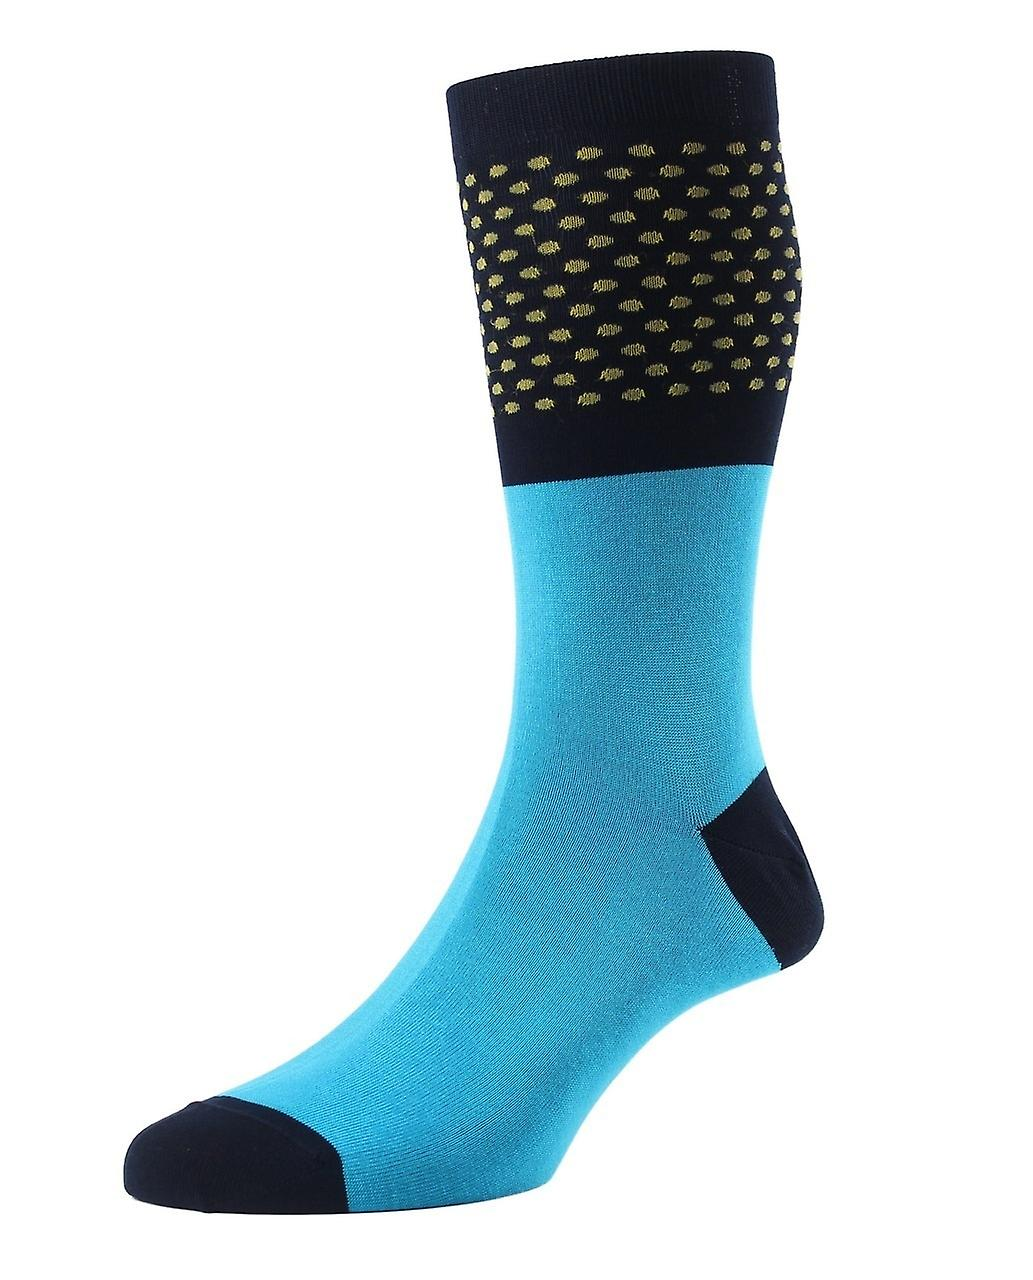 Hockney men's aqua polka-dot socks by Pantherella. Made in England from Egyptian cotton lisle